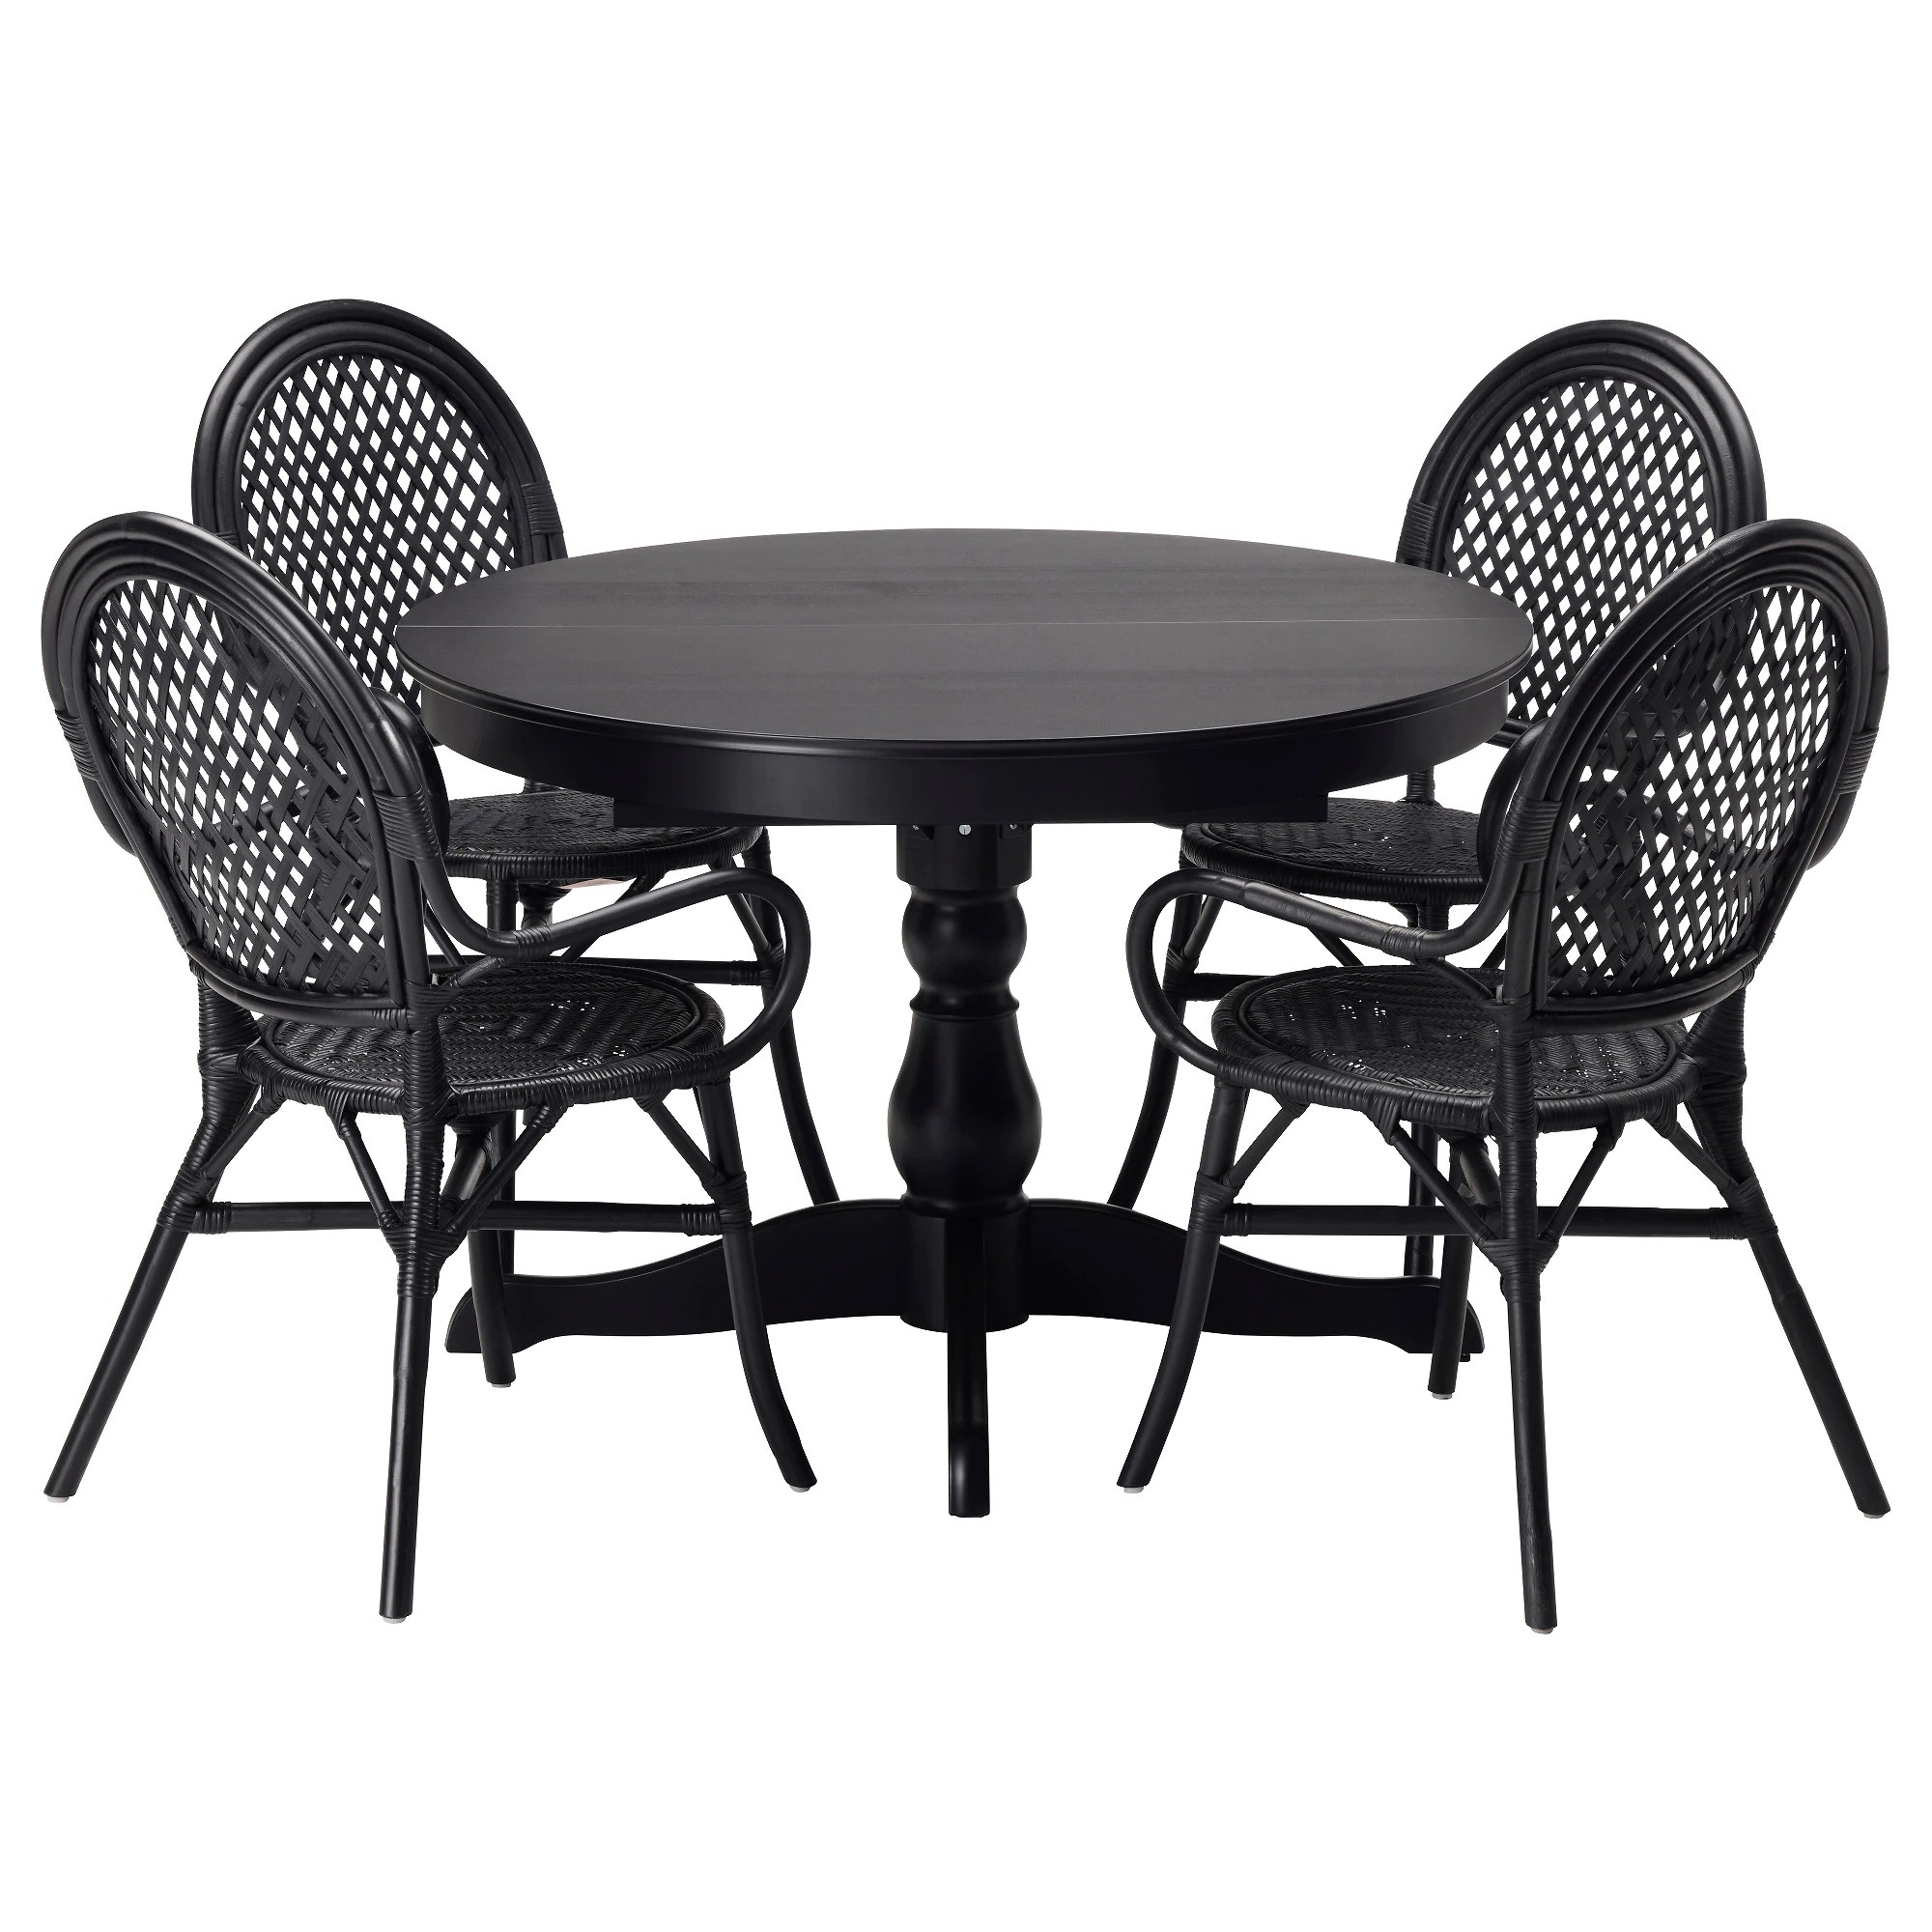 black kitchen chairs INGATORP LMSTA table and 4 chairs black rattan black Length 61